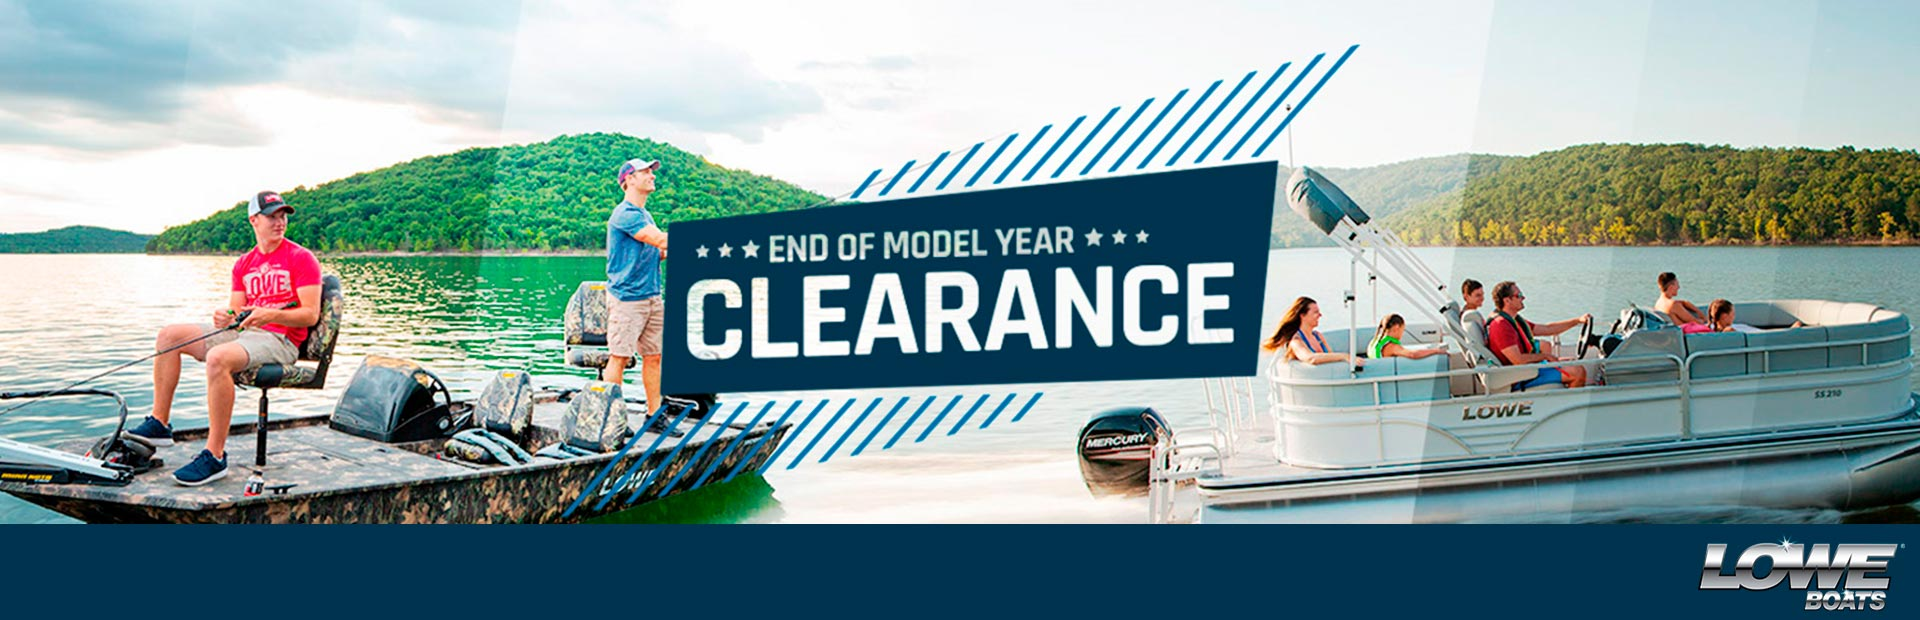 Lowe: End Of Model Year Clearance